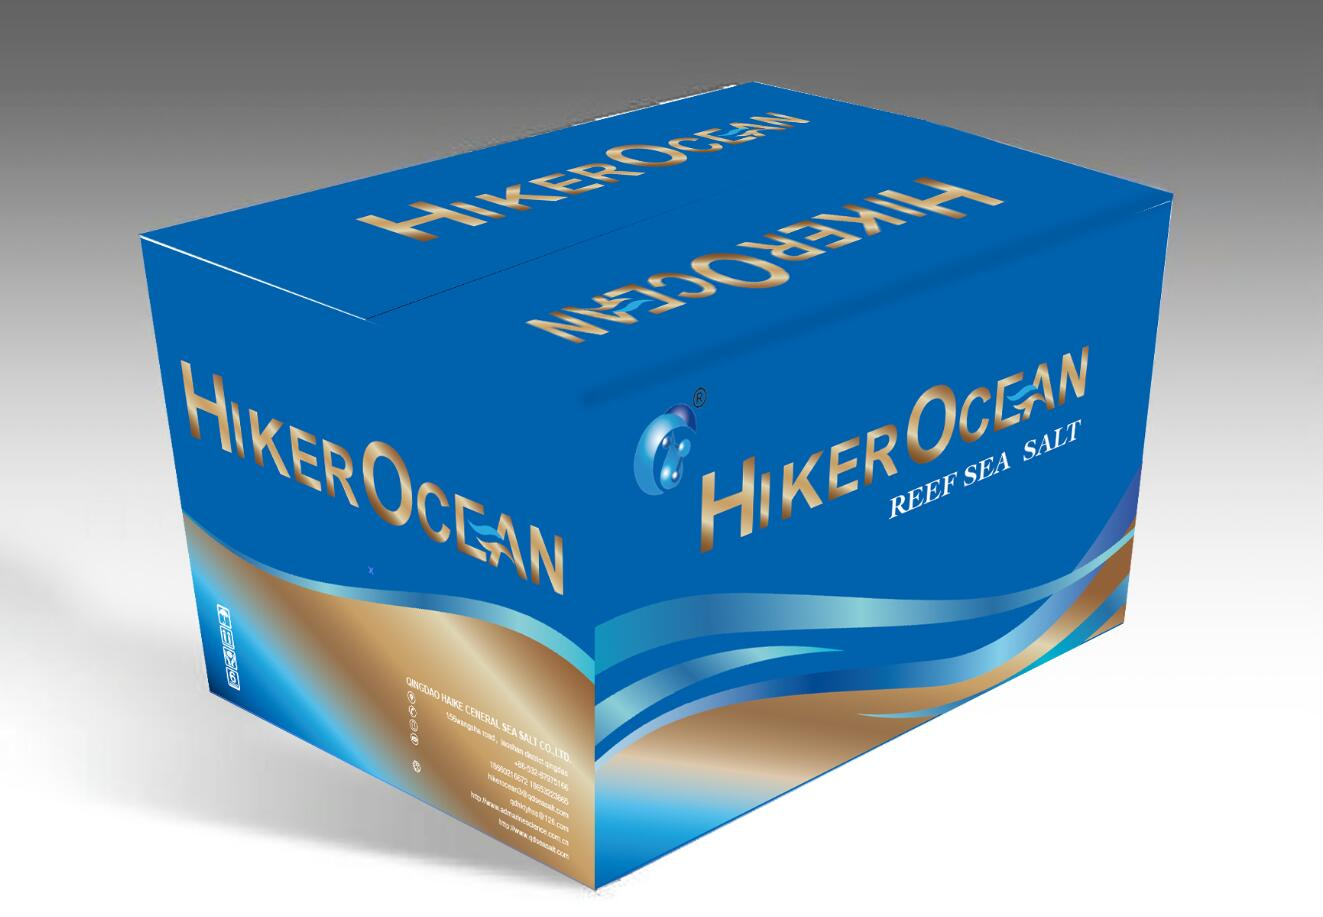 Hiker Ocean LPS Reef Salt